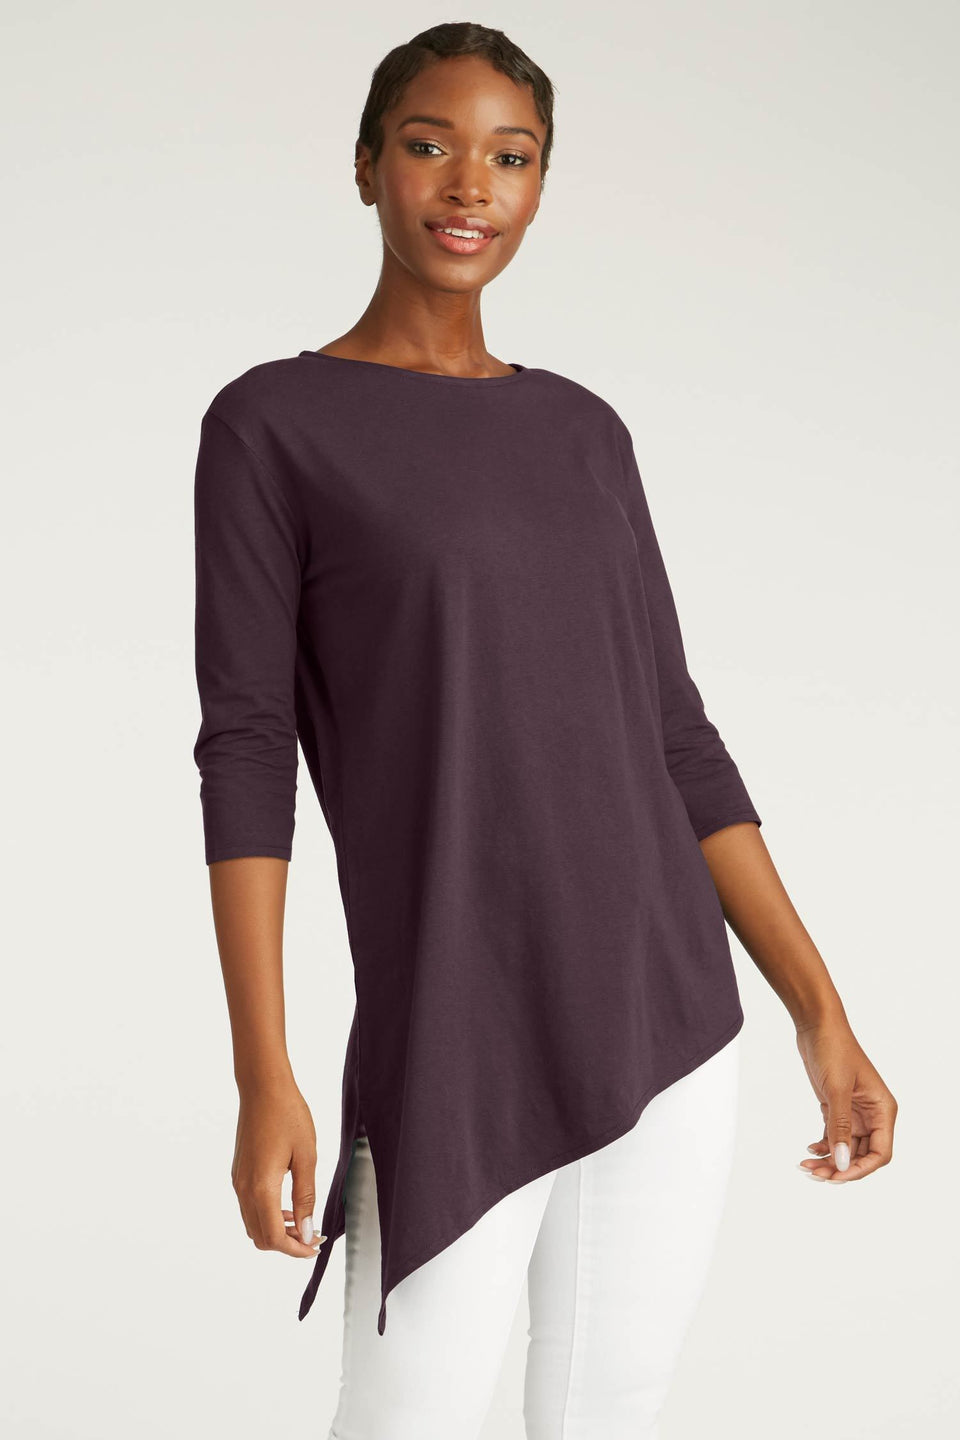 Asymmetrical Tunic in Plum